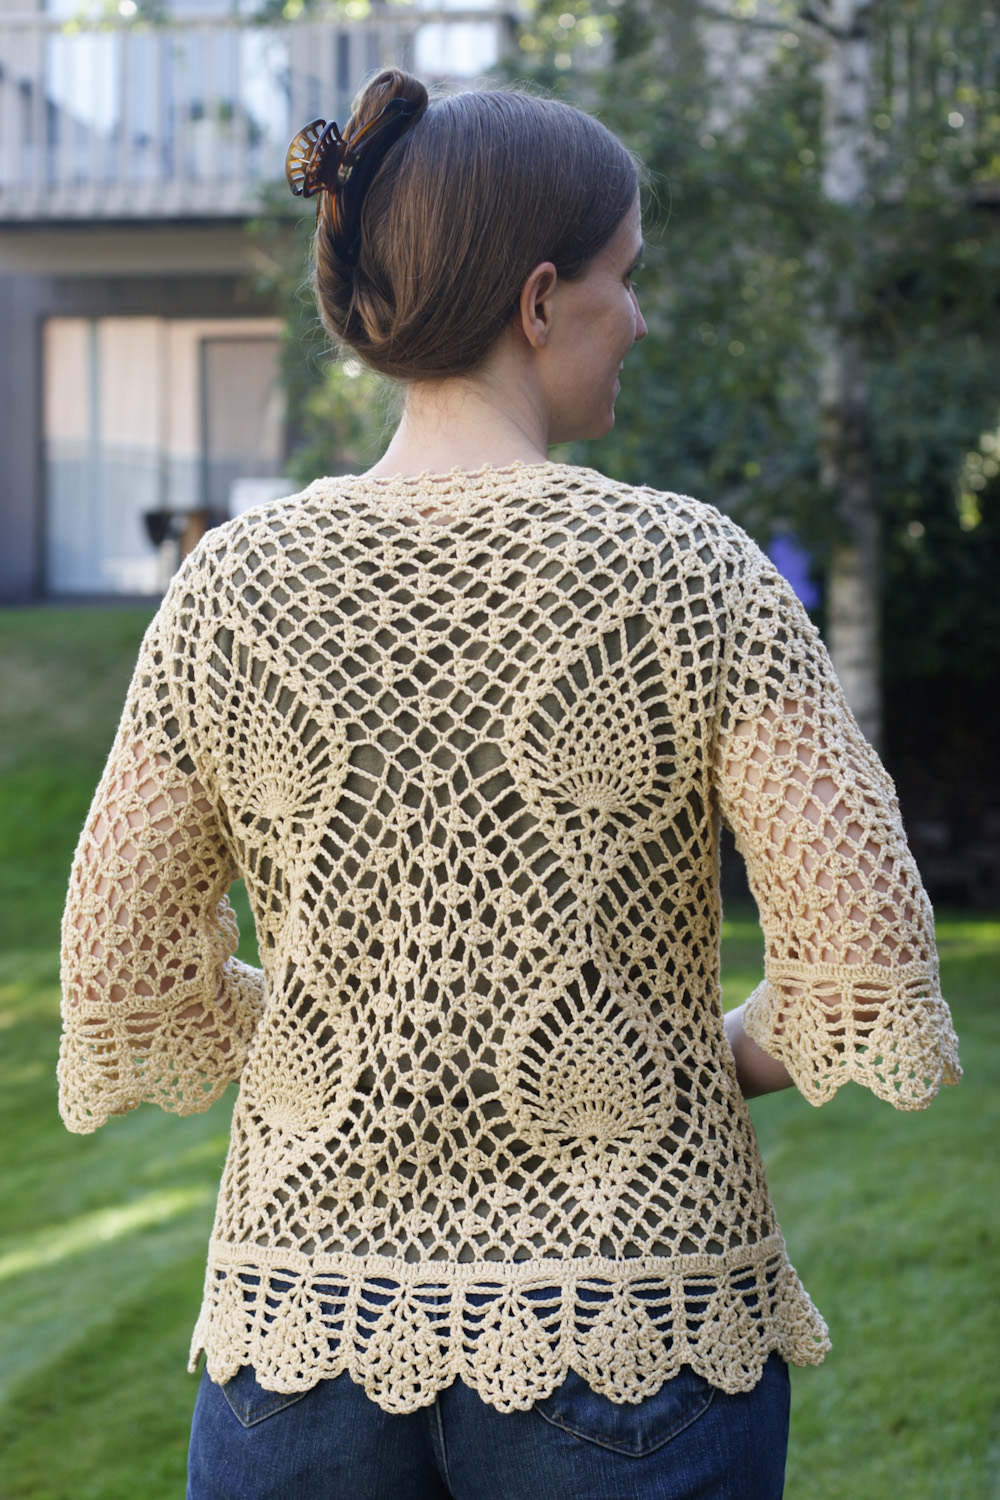 Free Crochet Sweater Patterns : Free Patterns to Crochet - Crochet Sweater Patterns - Yarn Stores